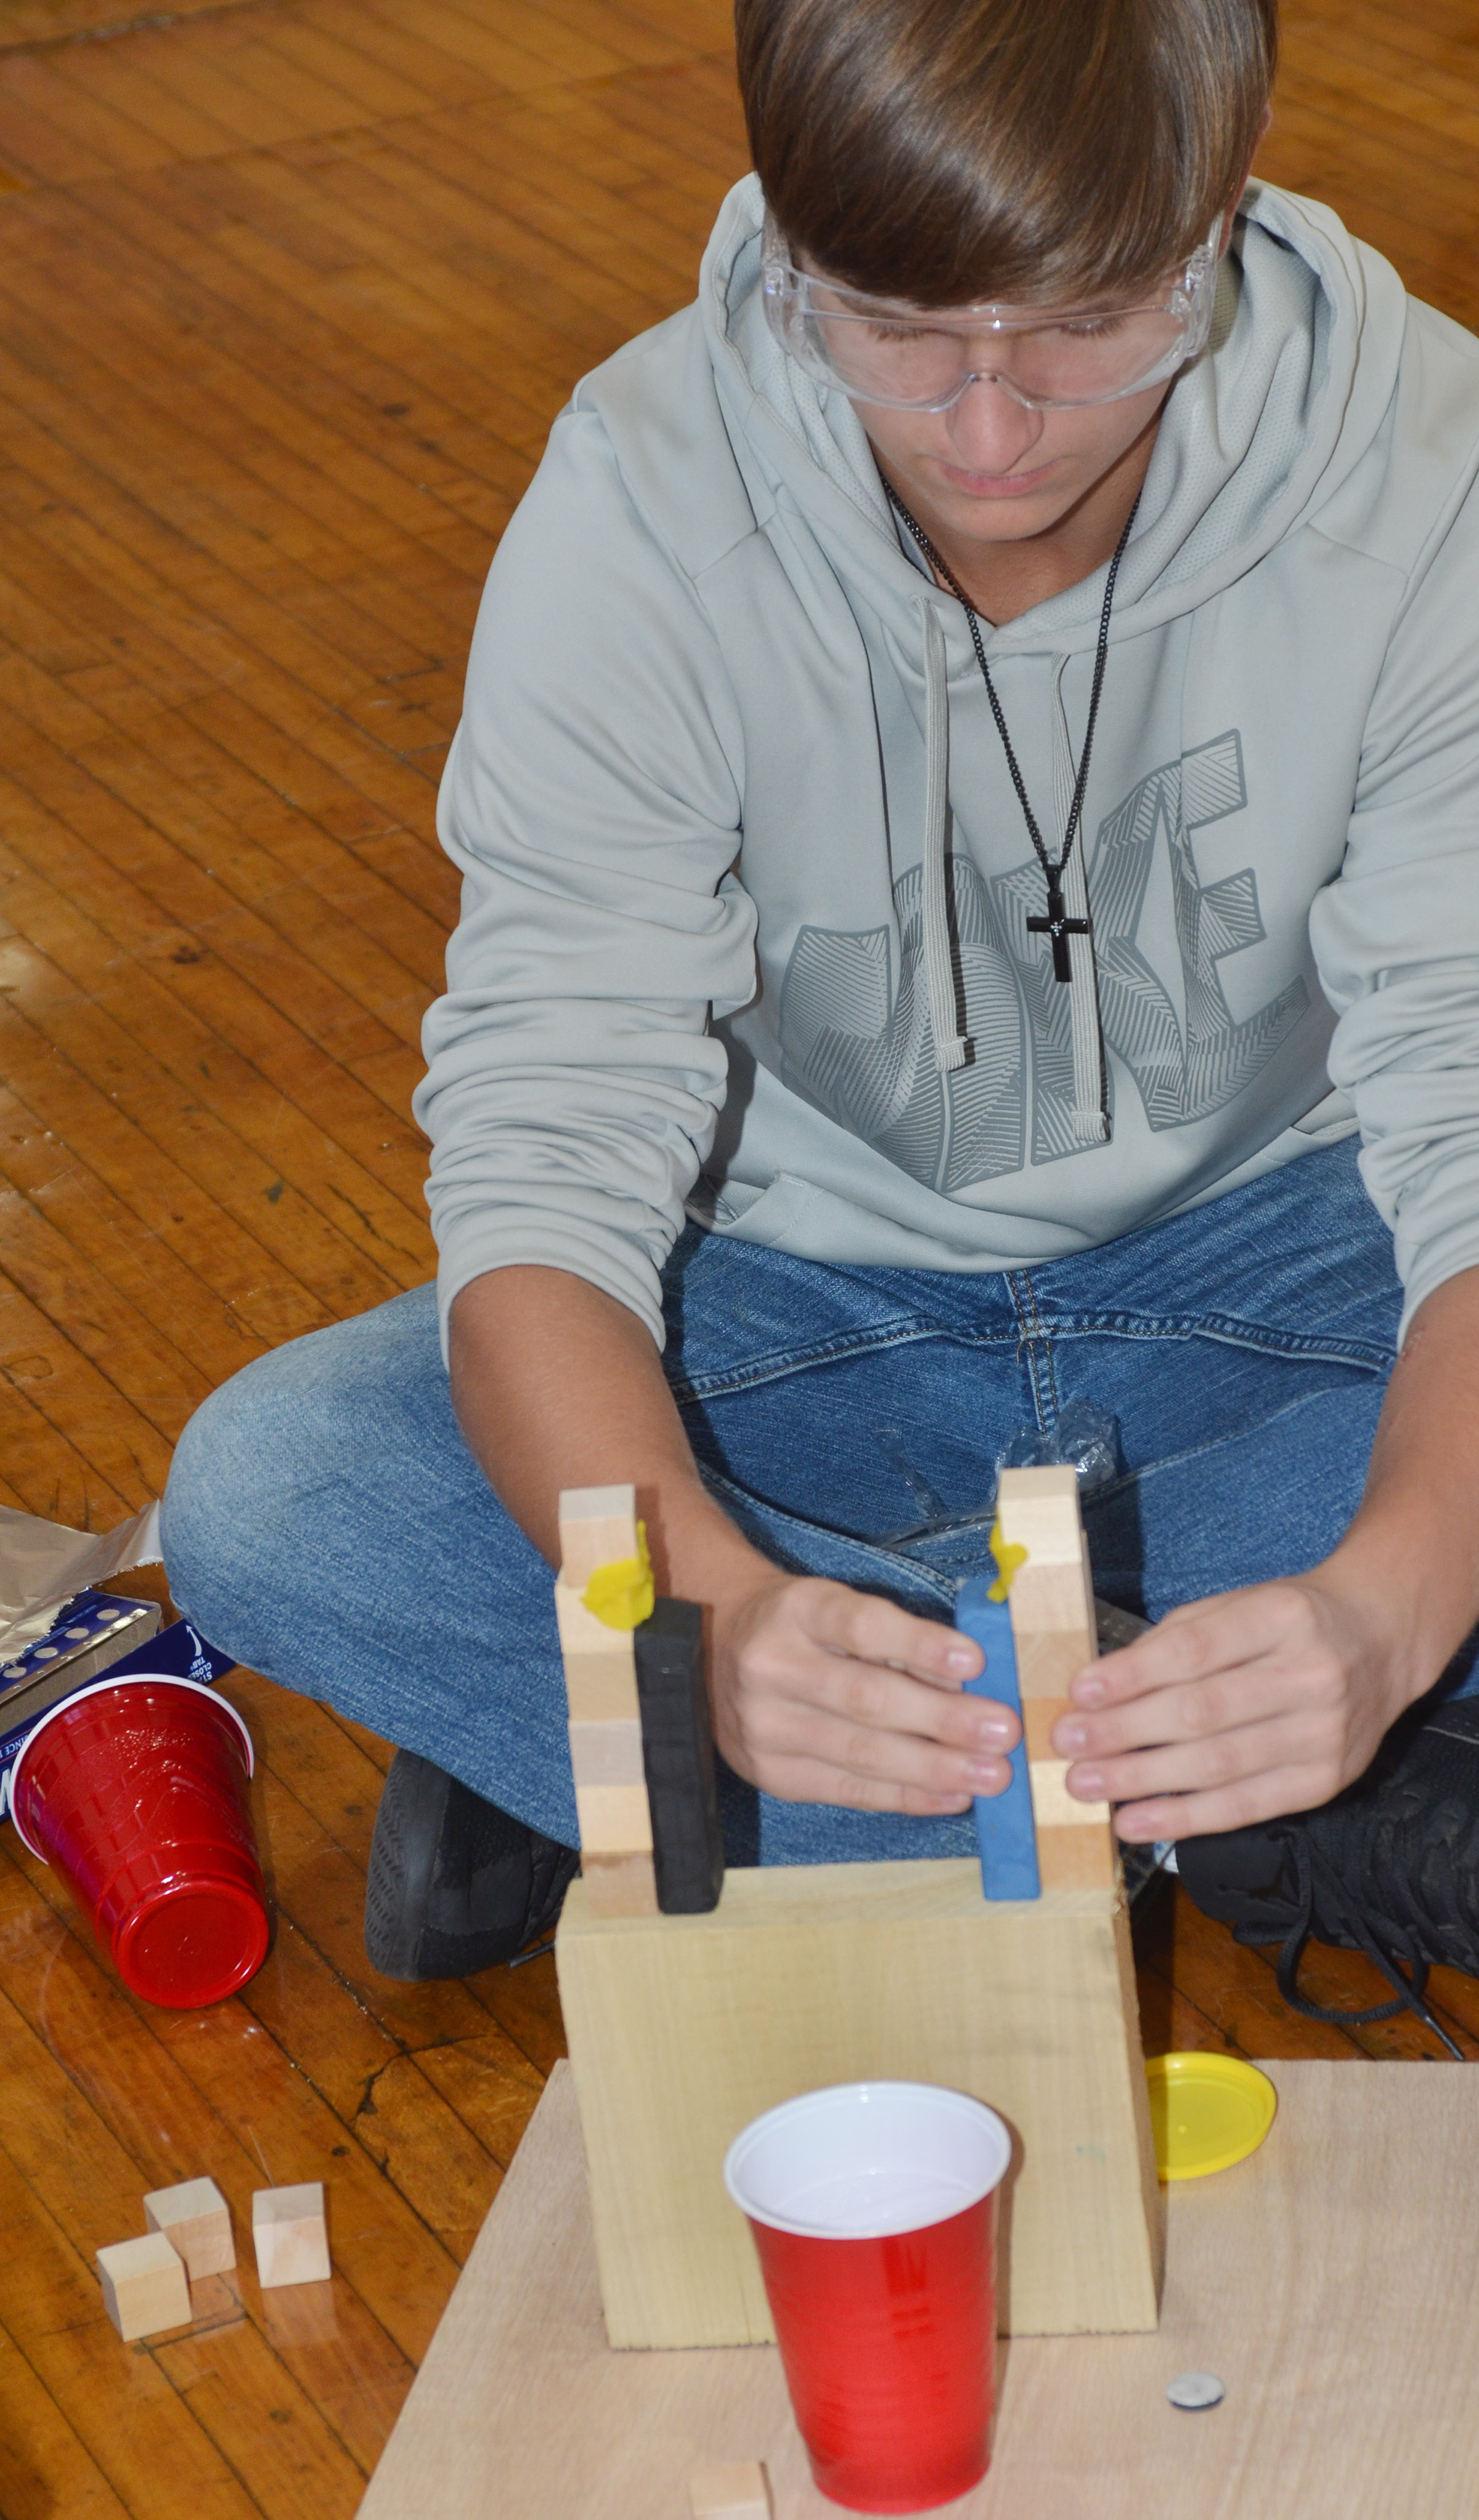 CHS junior Myles Murrell builds his group's Rube Goldberg machine in the design build competition.